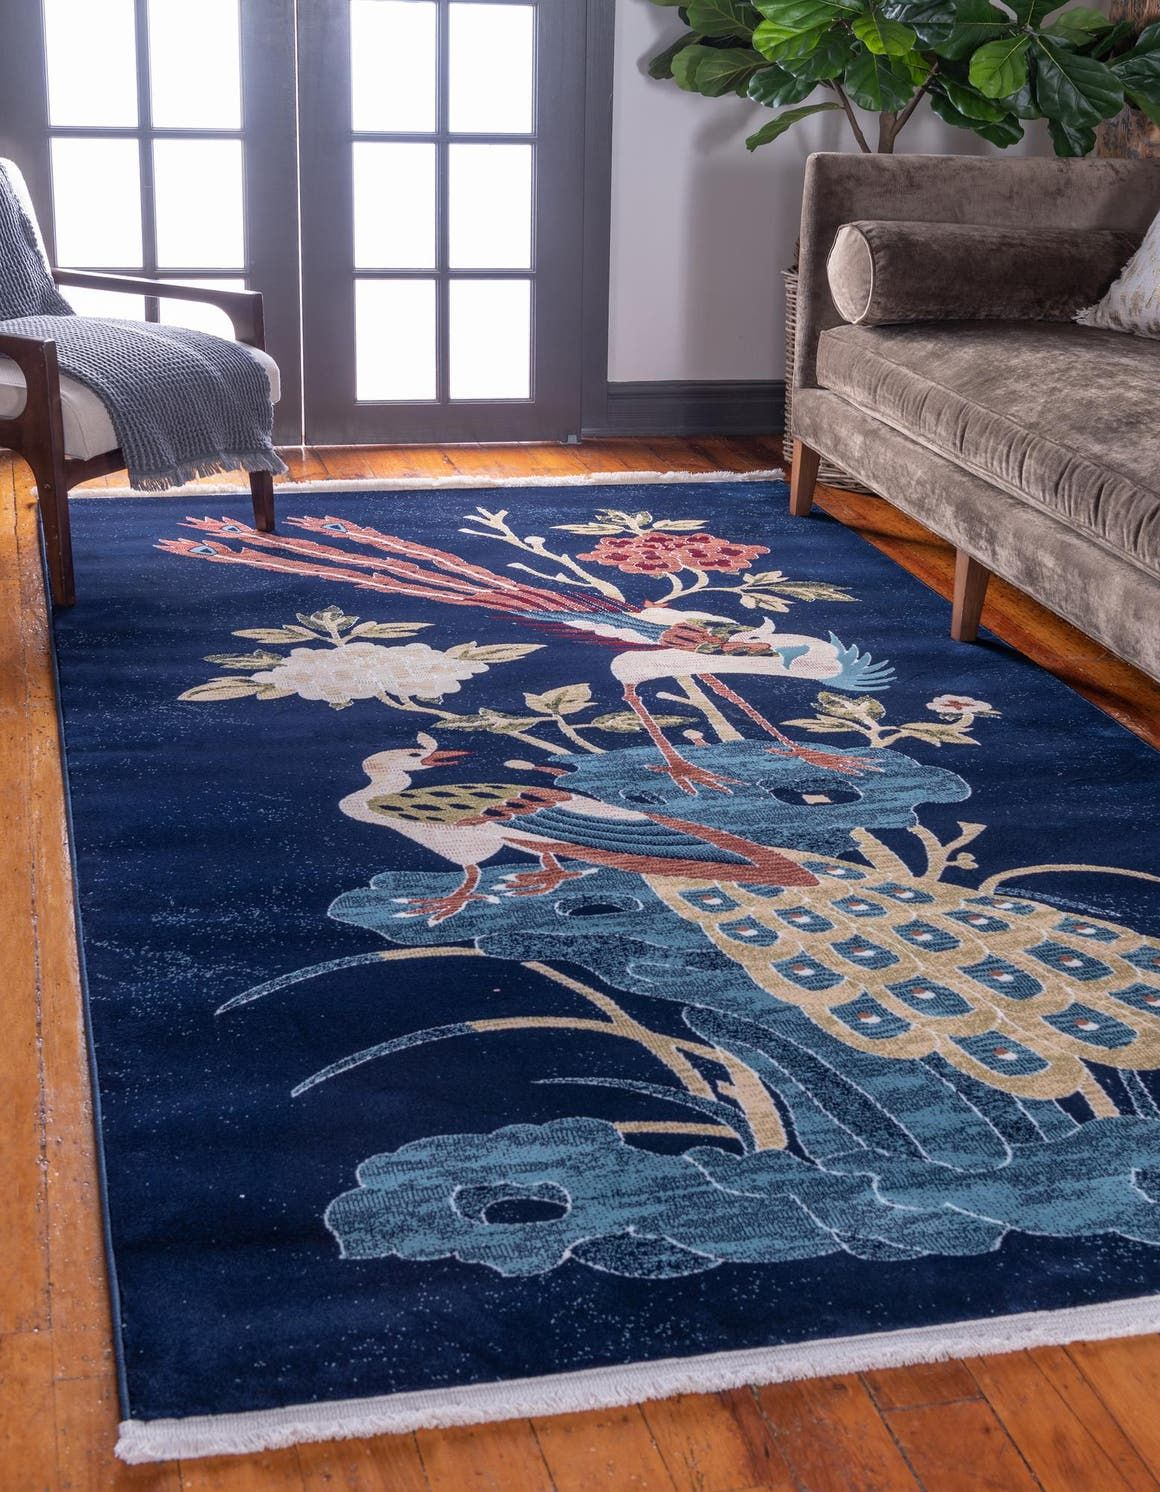 Pao Tou Navy Blue 9x12 Large Area Rug In 2020 Rugs 5x8 Area Rugs 4x6 Area Rugs